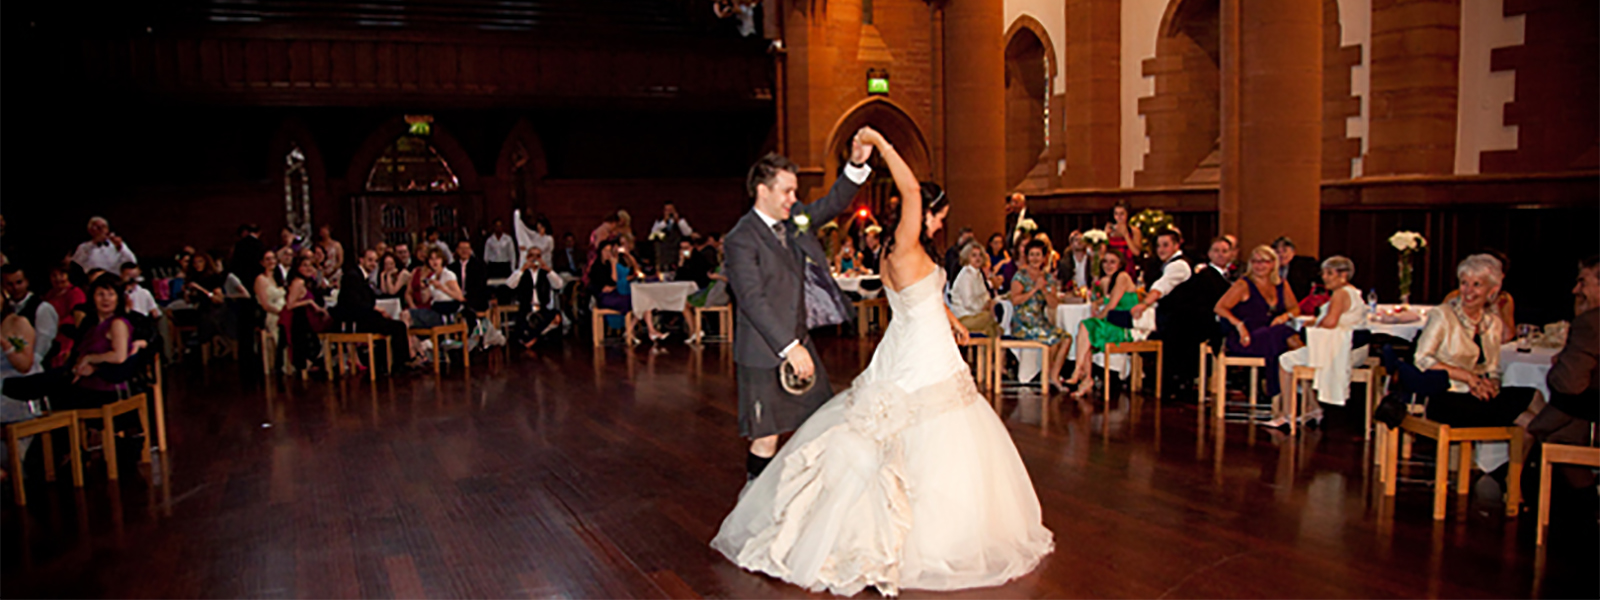 Wedding_reception_at_Barony_Hall_1600x600